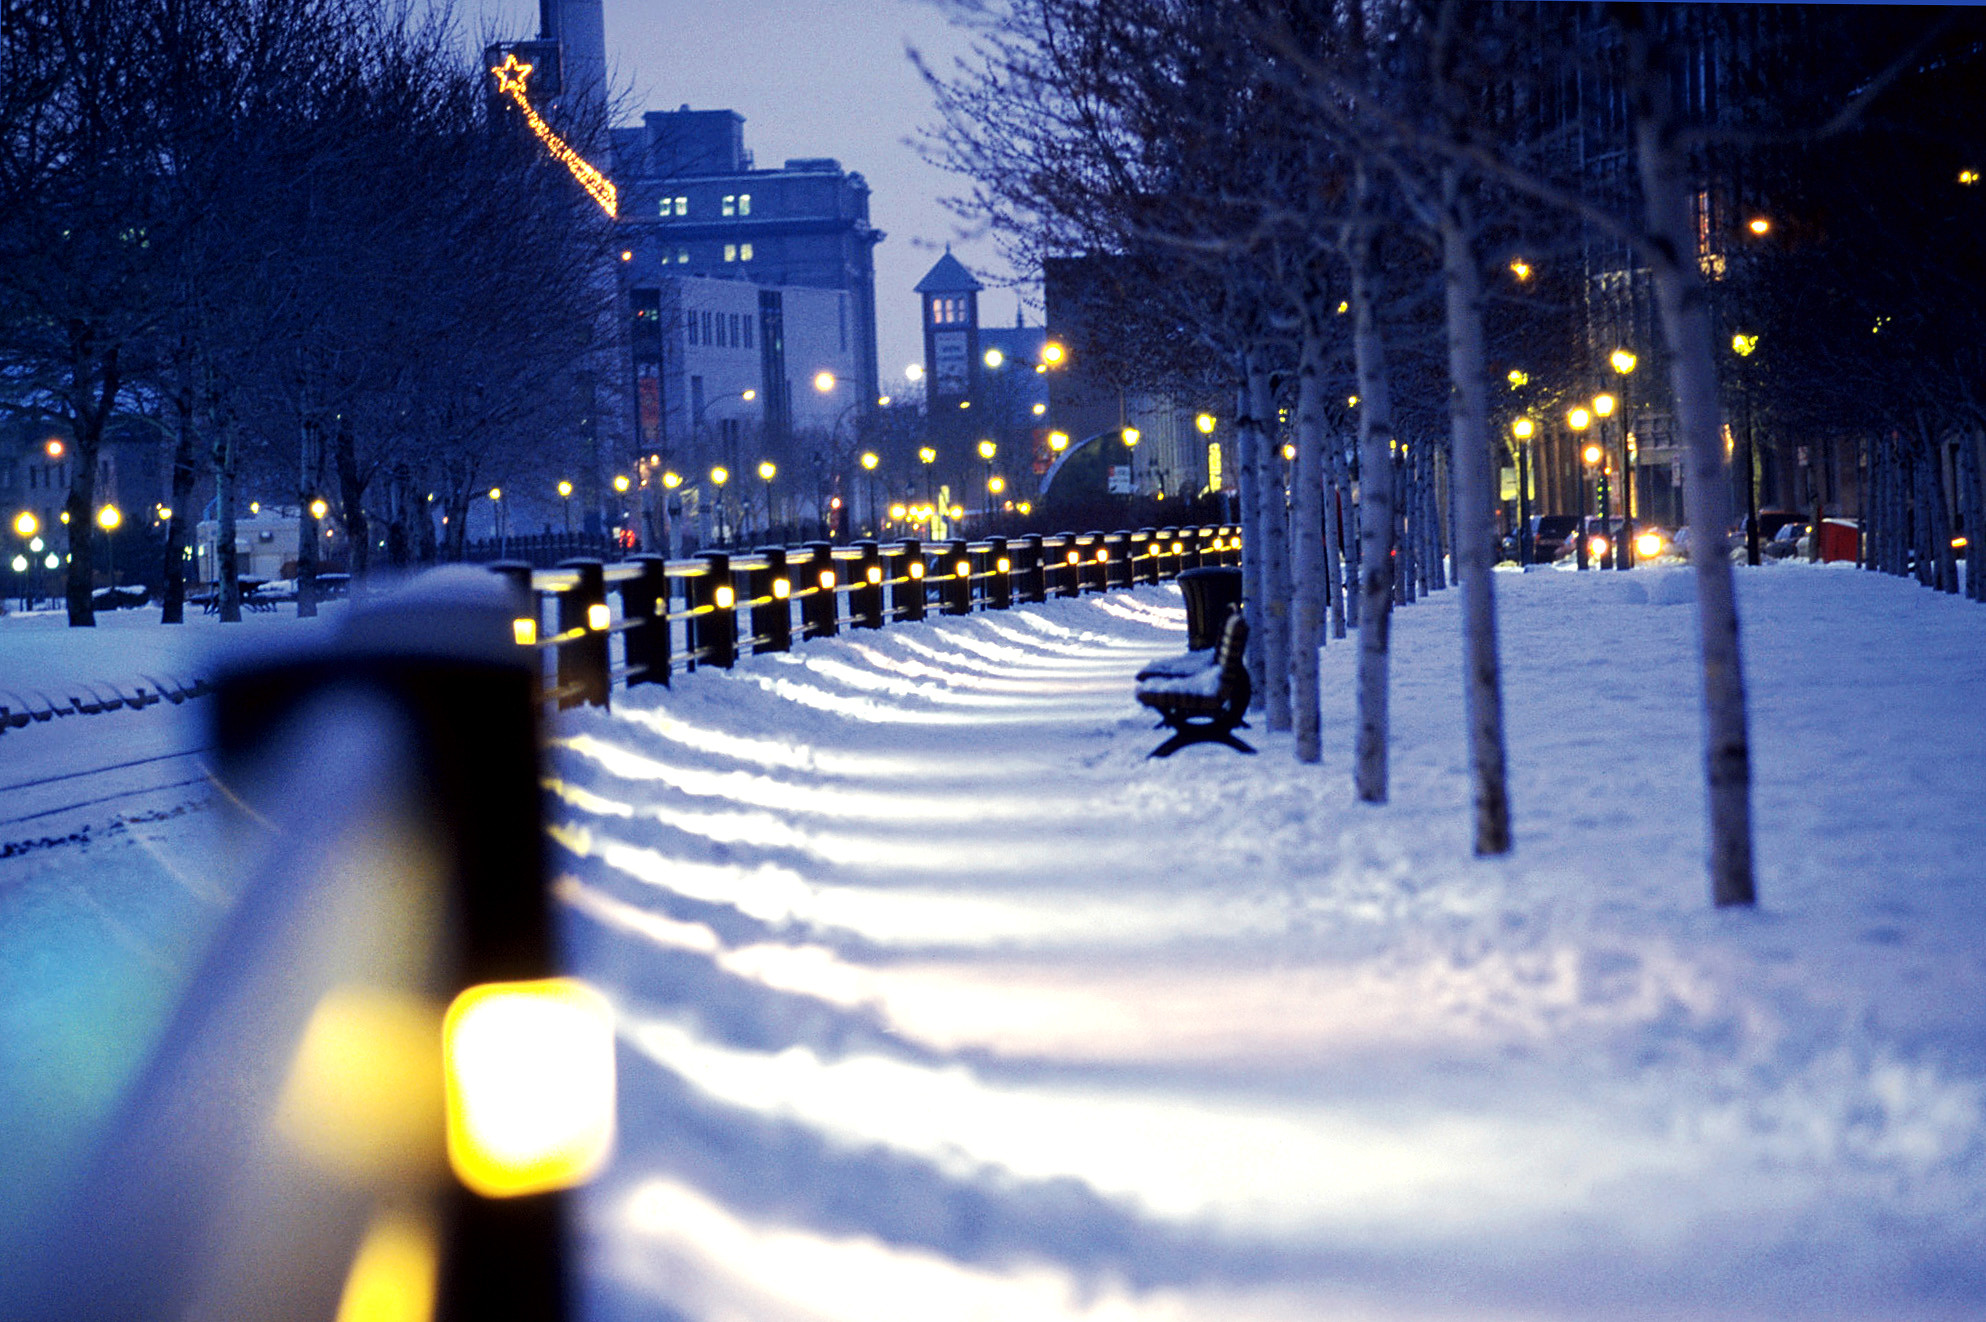 General Montreal snow lights winter city Canada night lantern  bench